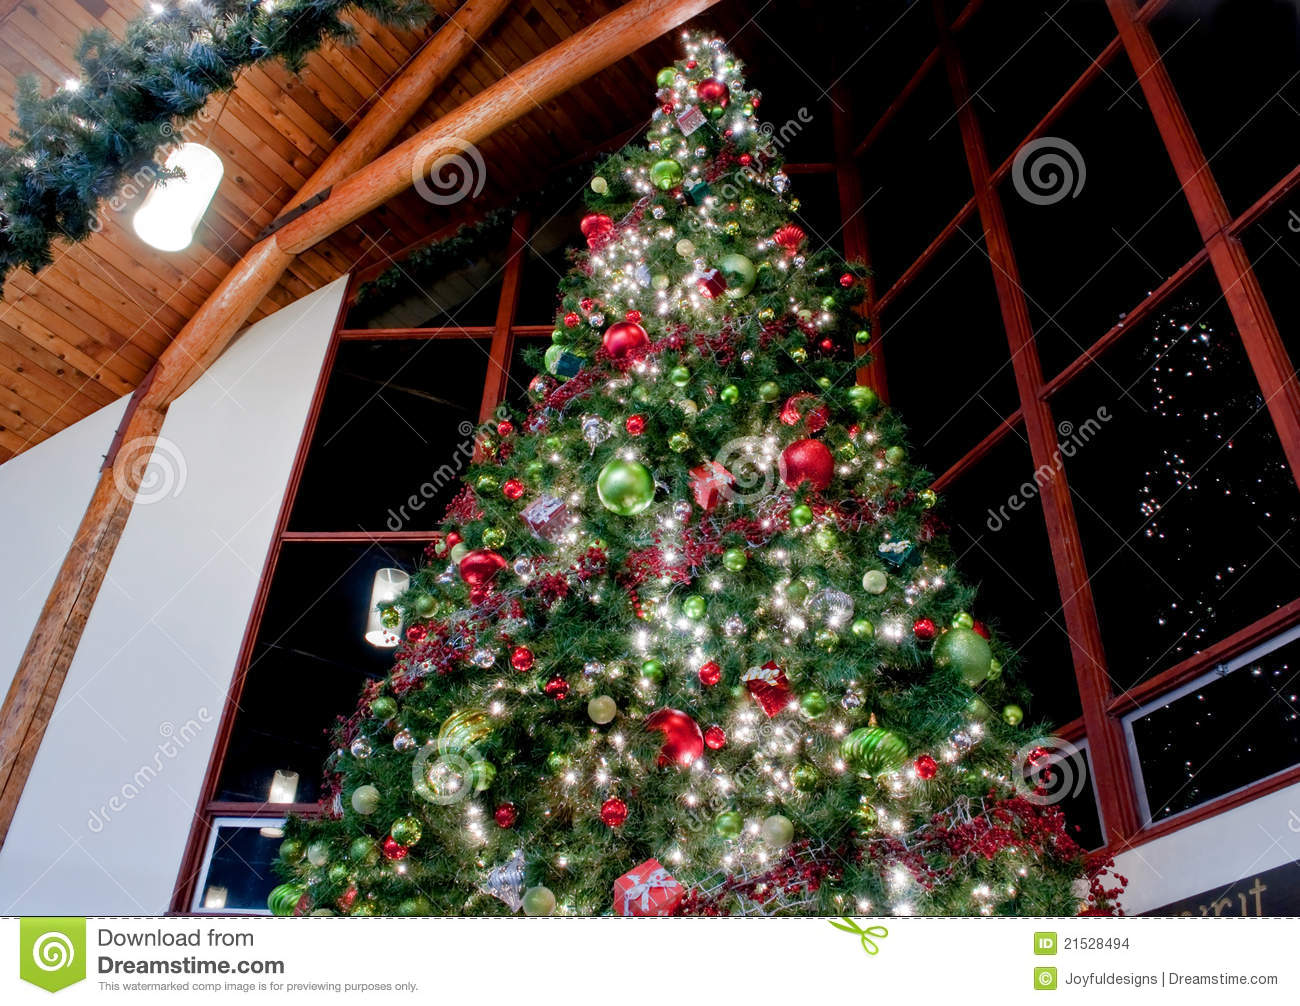 large indoor decorated christmas tree - Indoor Decorative Christmas Trees